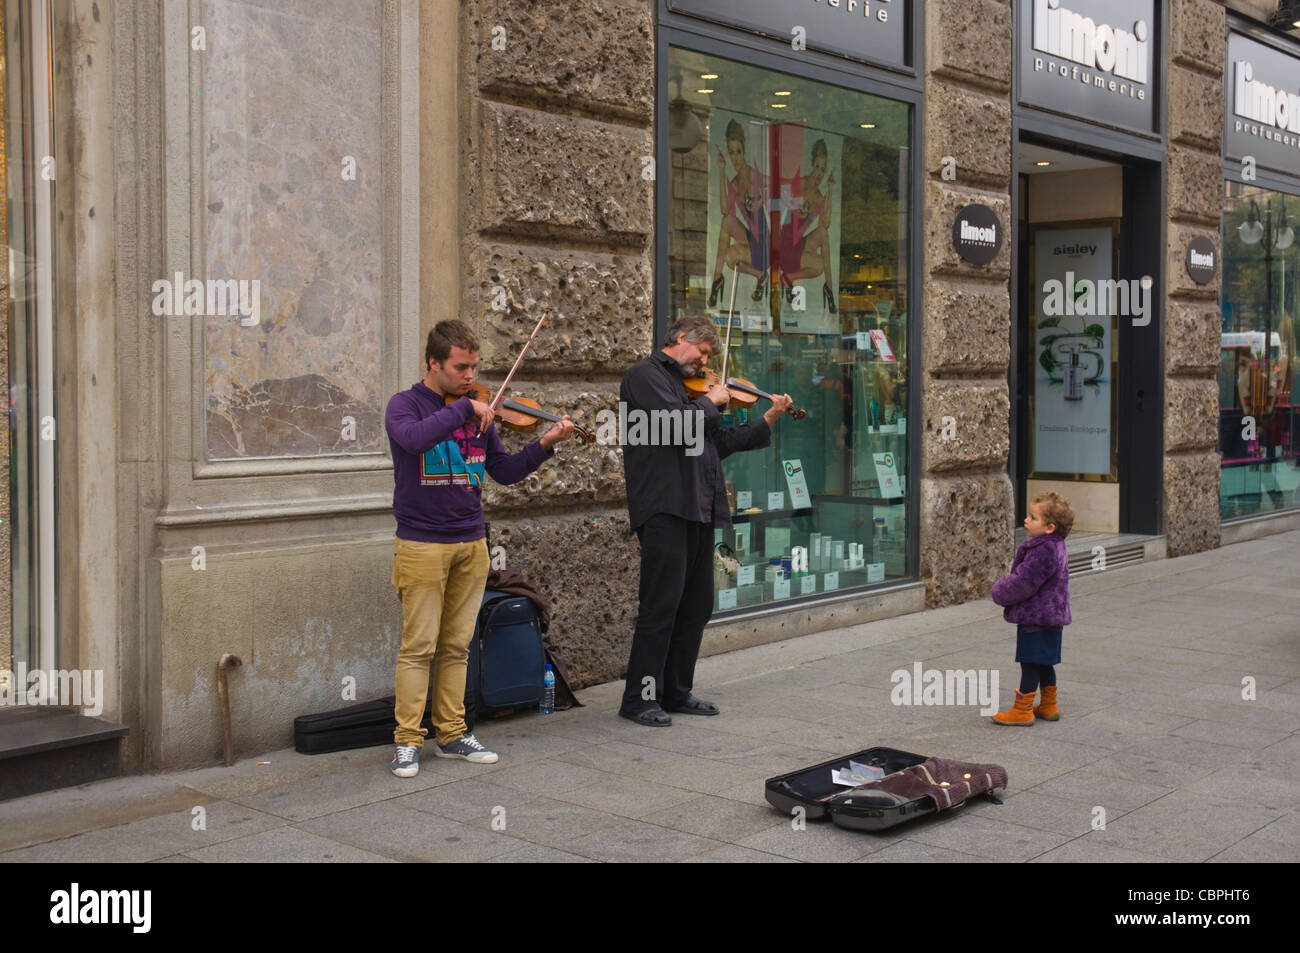 Buskers playing classical music along Via Dante street Milan Lombardy region Italy Europe - Stock Image